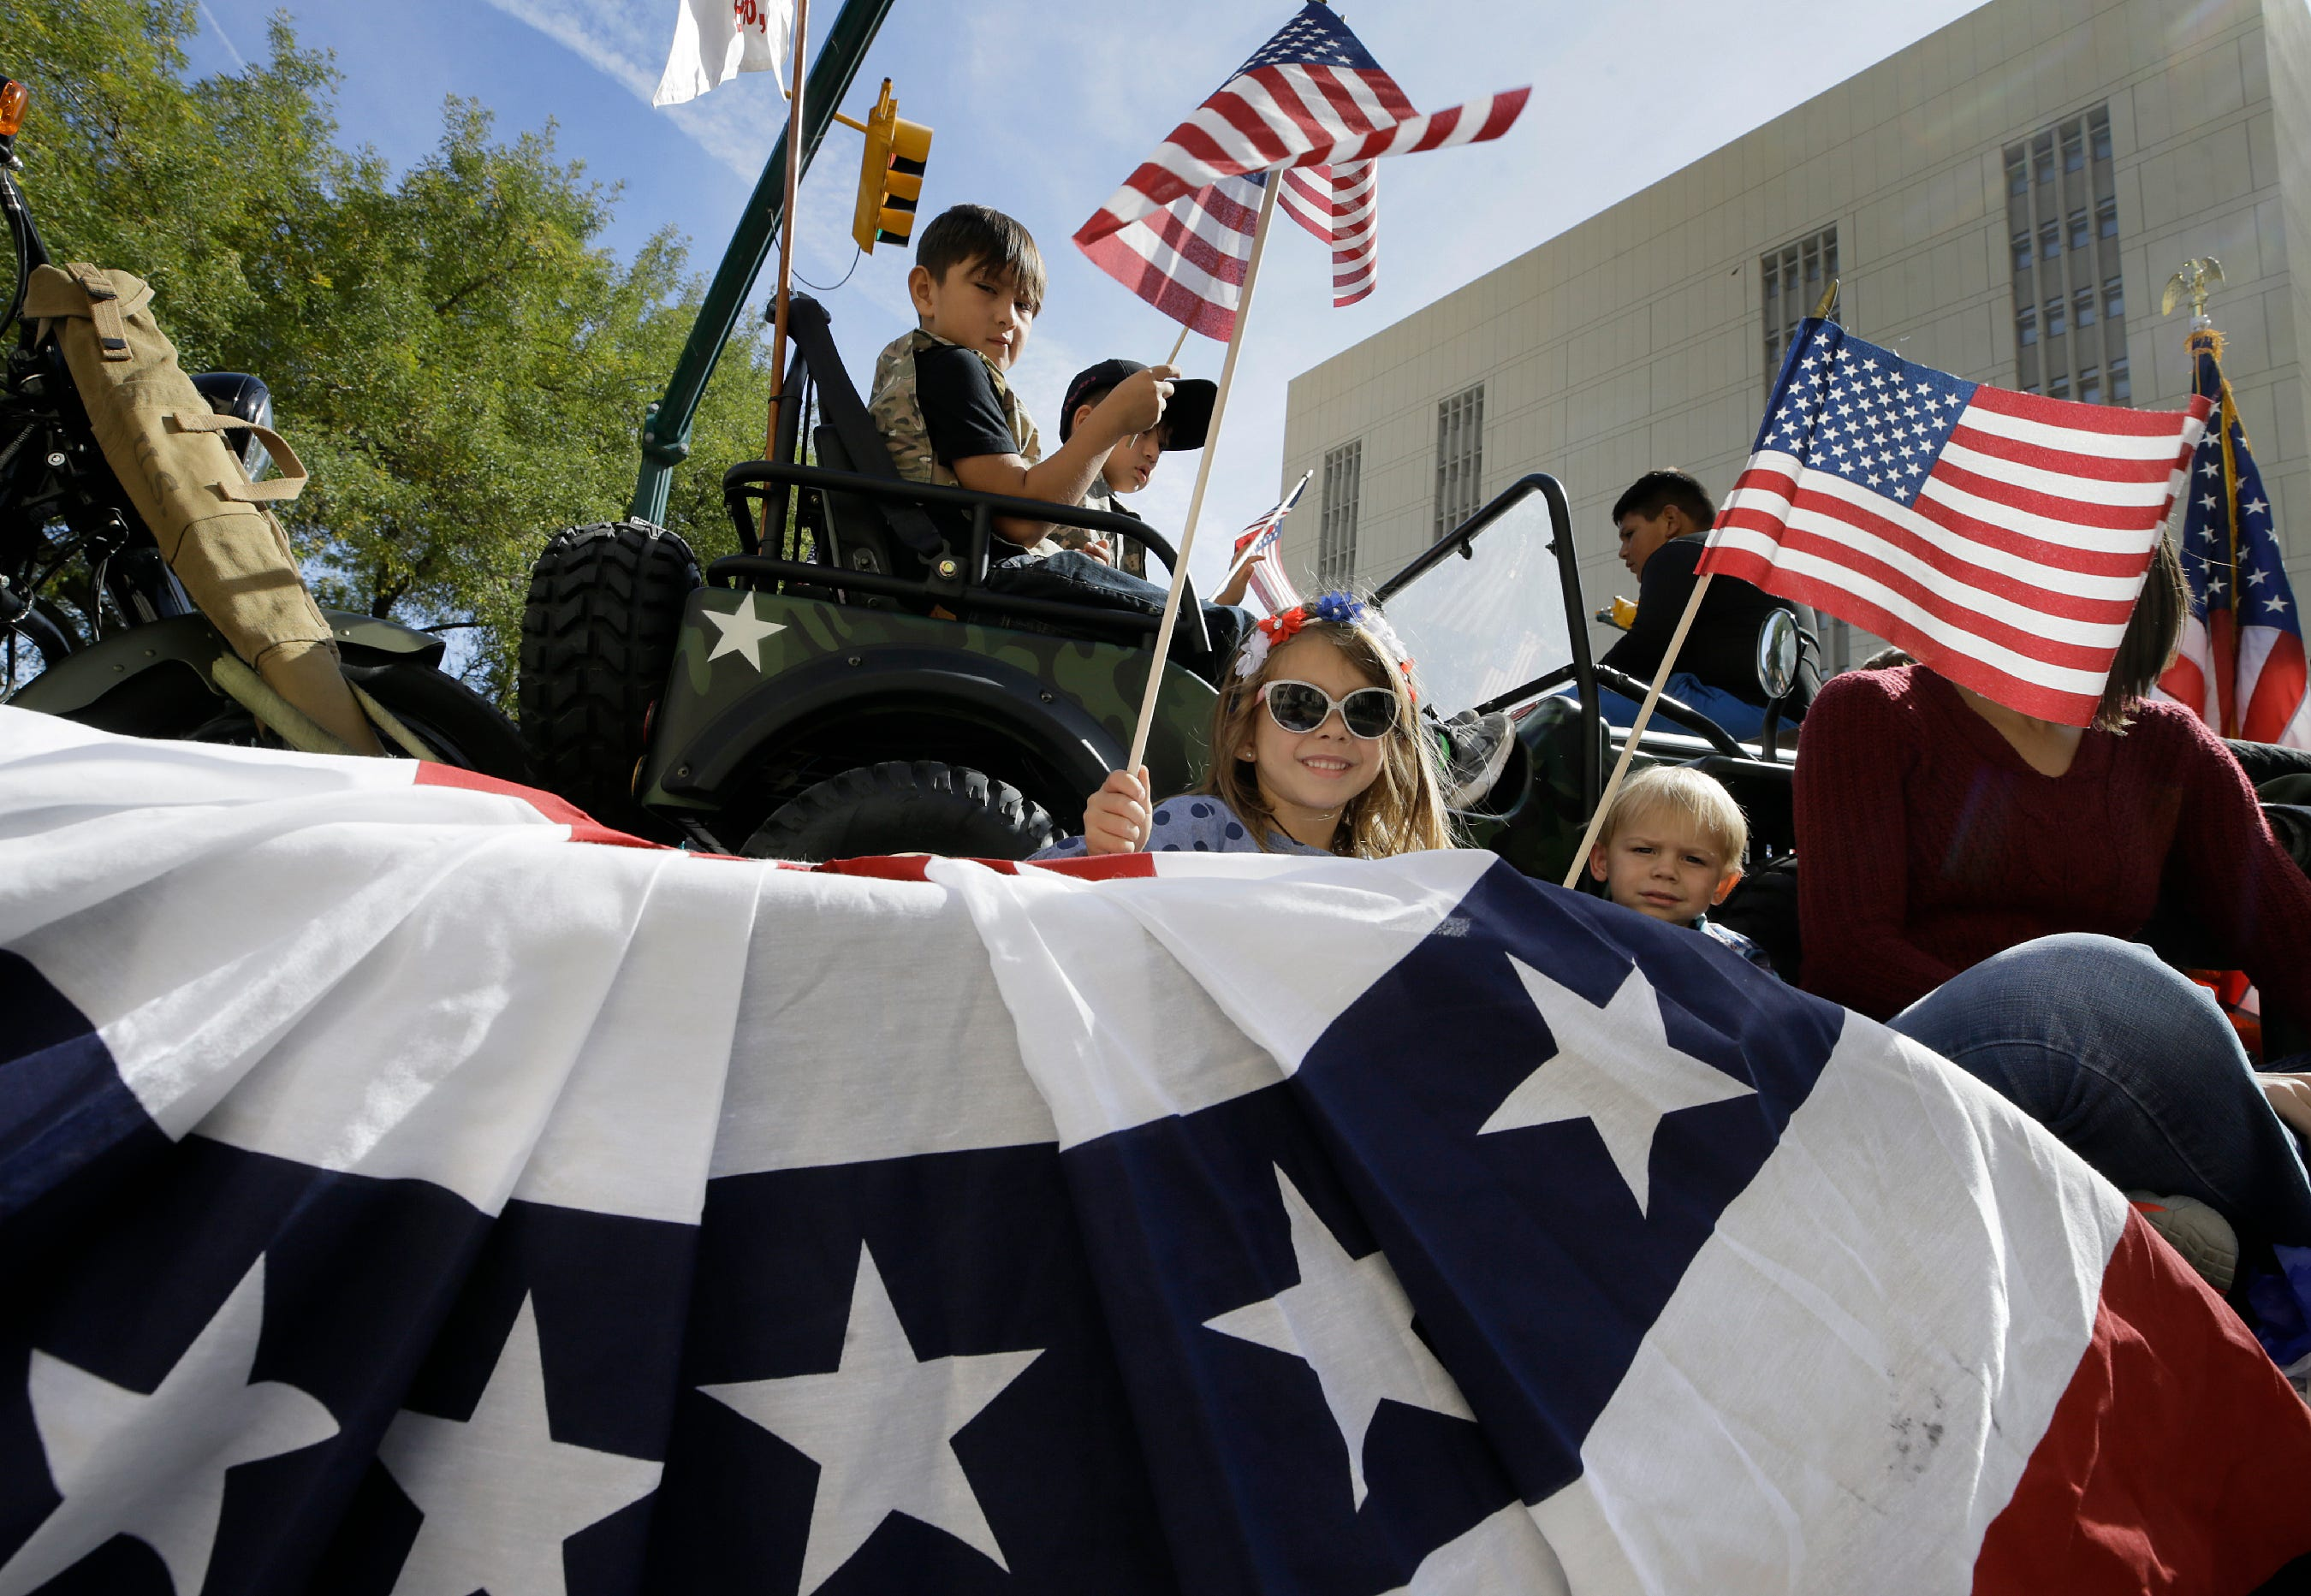 The 2019 El Paso Veterans Day Parade